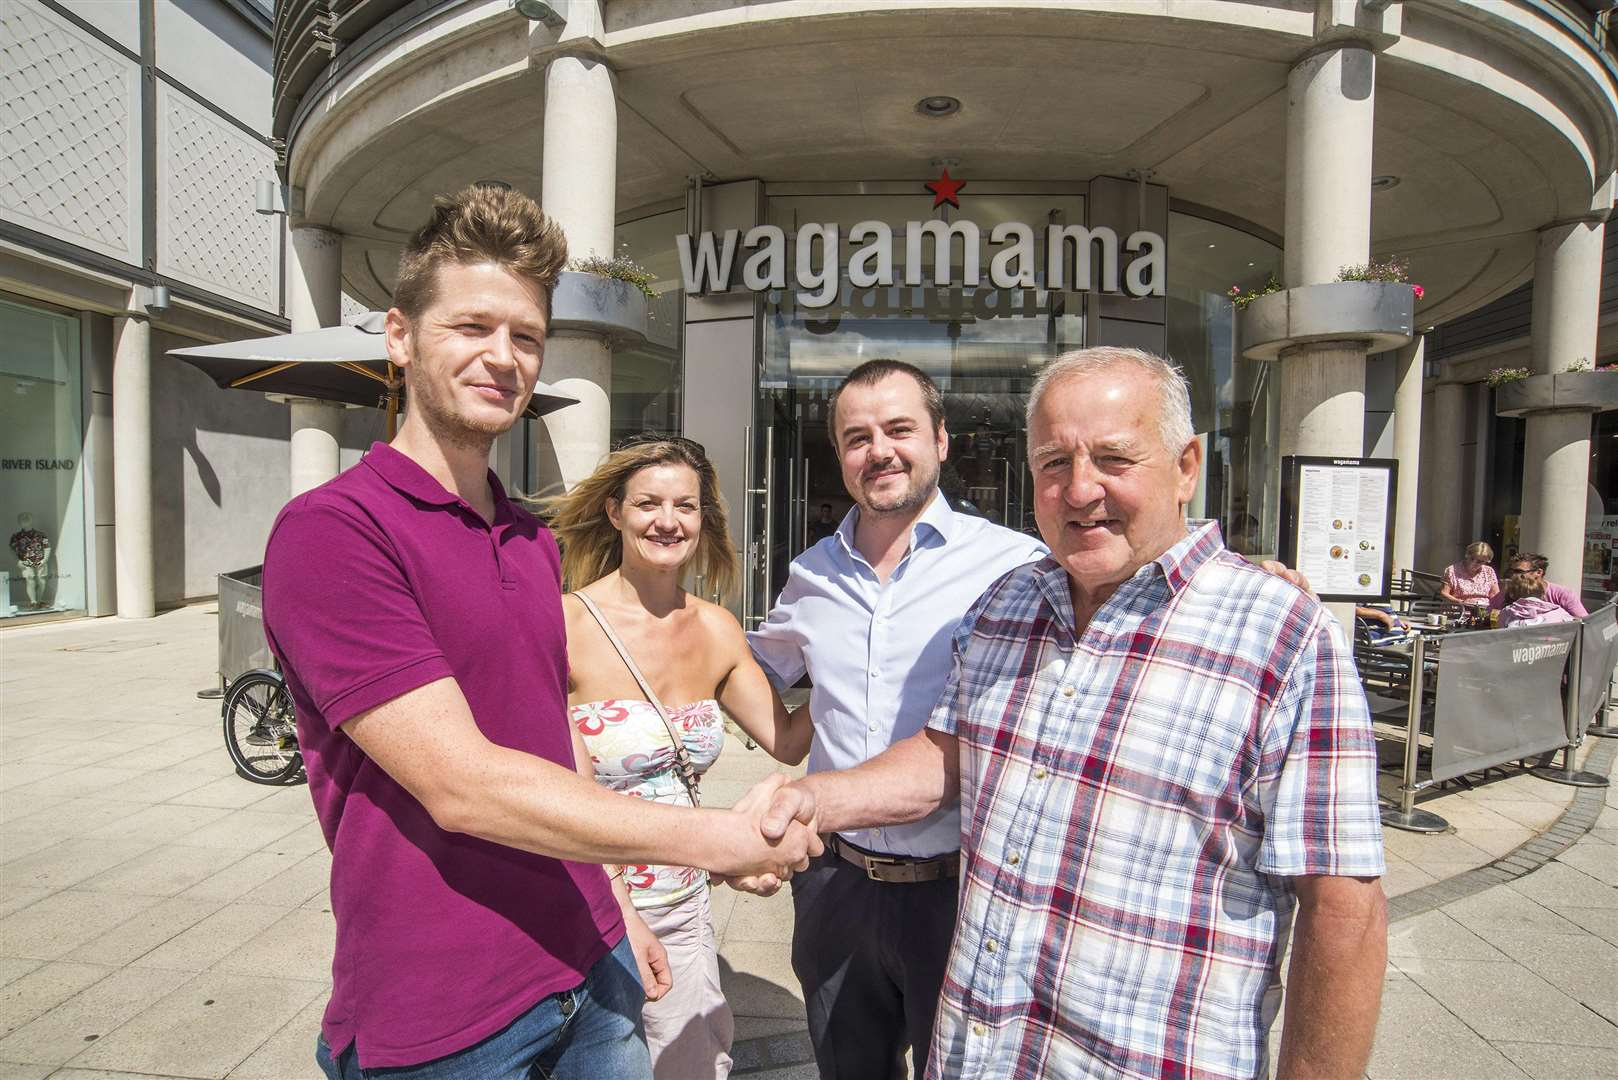 Cardiac arrest patient saying thank you to Wagamama staff.Wagamama, The Arc Suffolk, Bury St Edmunds.Trevor Boughton wants to say thank you, after first-aid trained Wagamama staff saved his life. Trevor Boughton (cardiac arrest survivor).Sarah Woodvine (daughter).Paul Boughton (son).Daniel Challenor (Wagamama) Picture Mark Westley. (3507040)